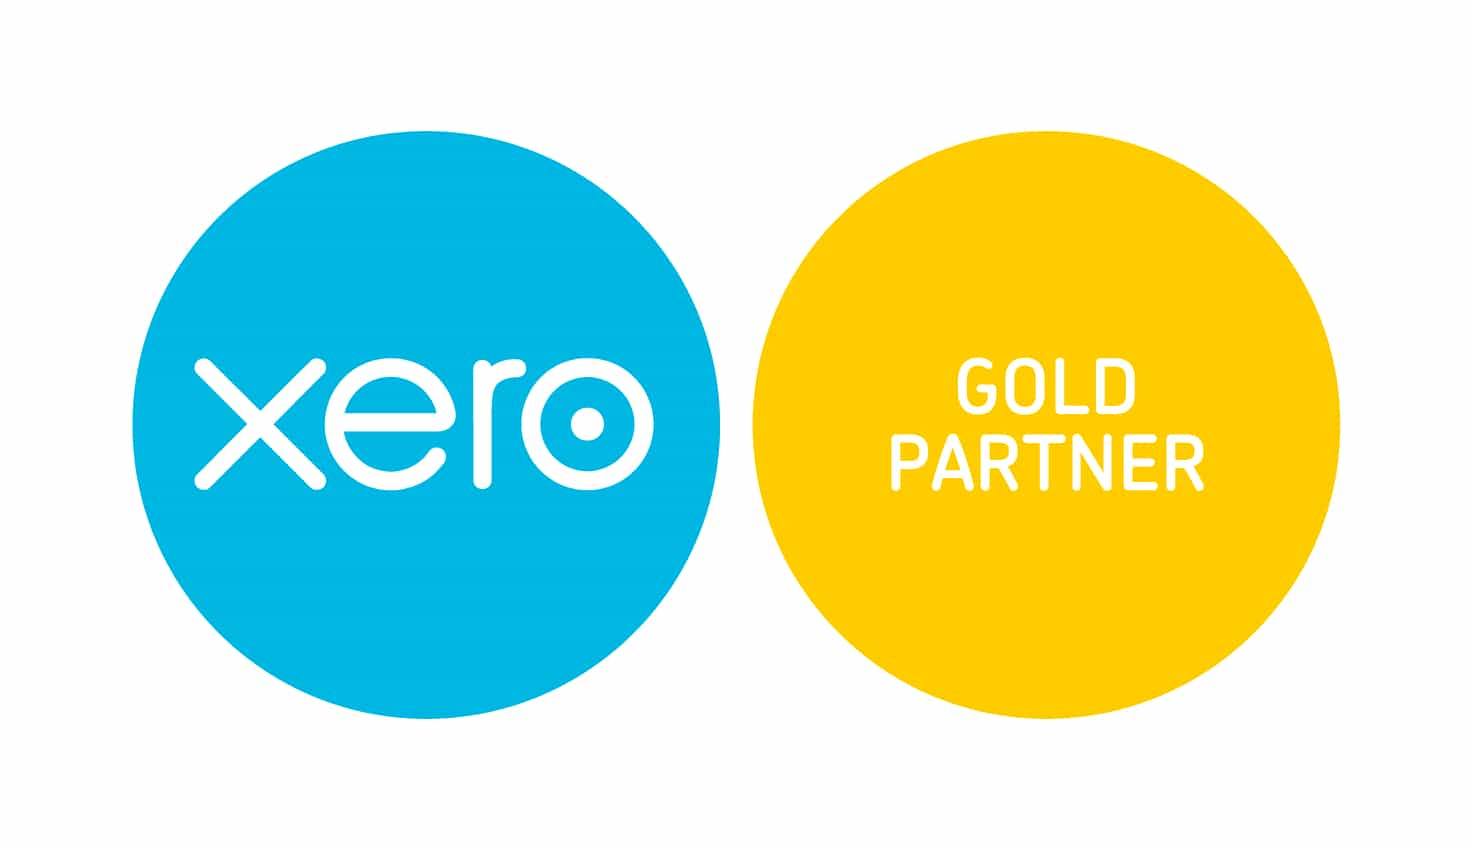 Xero-gold-partner-logo-0